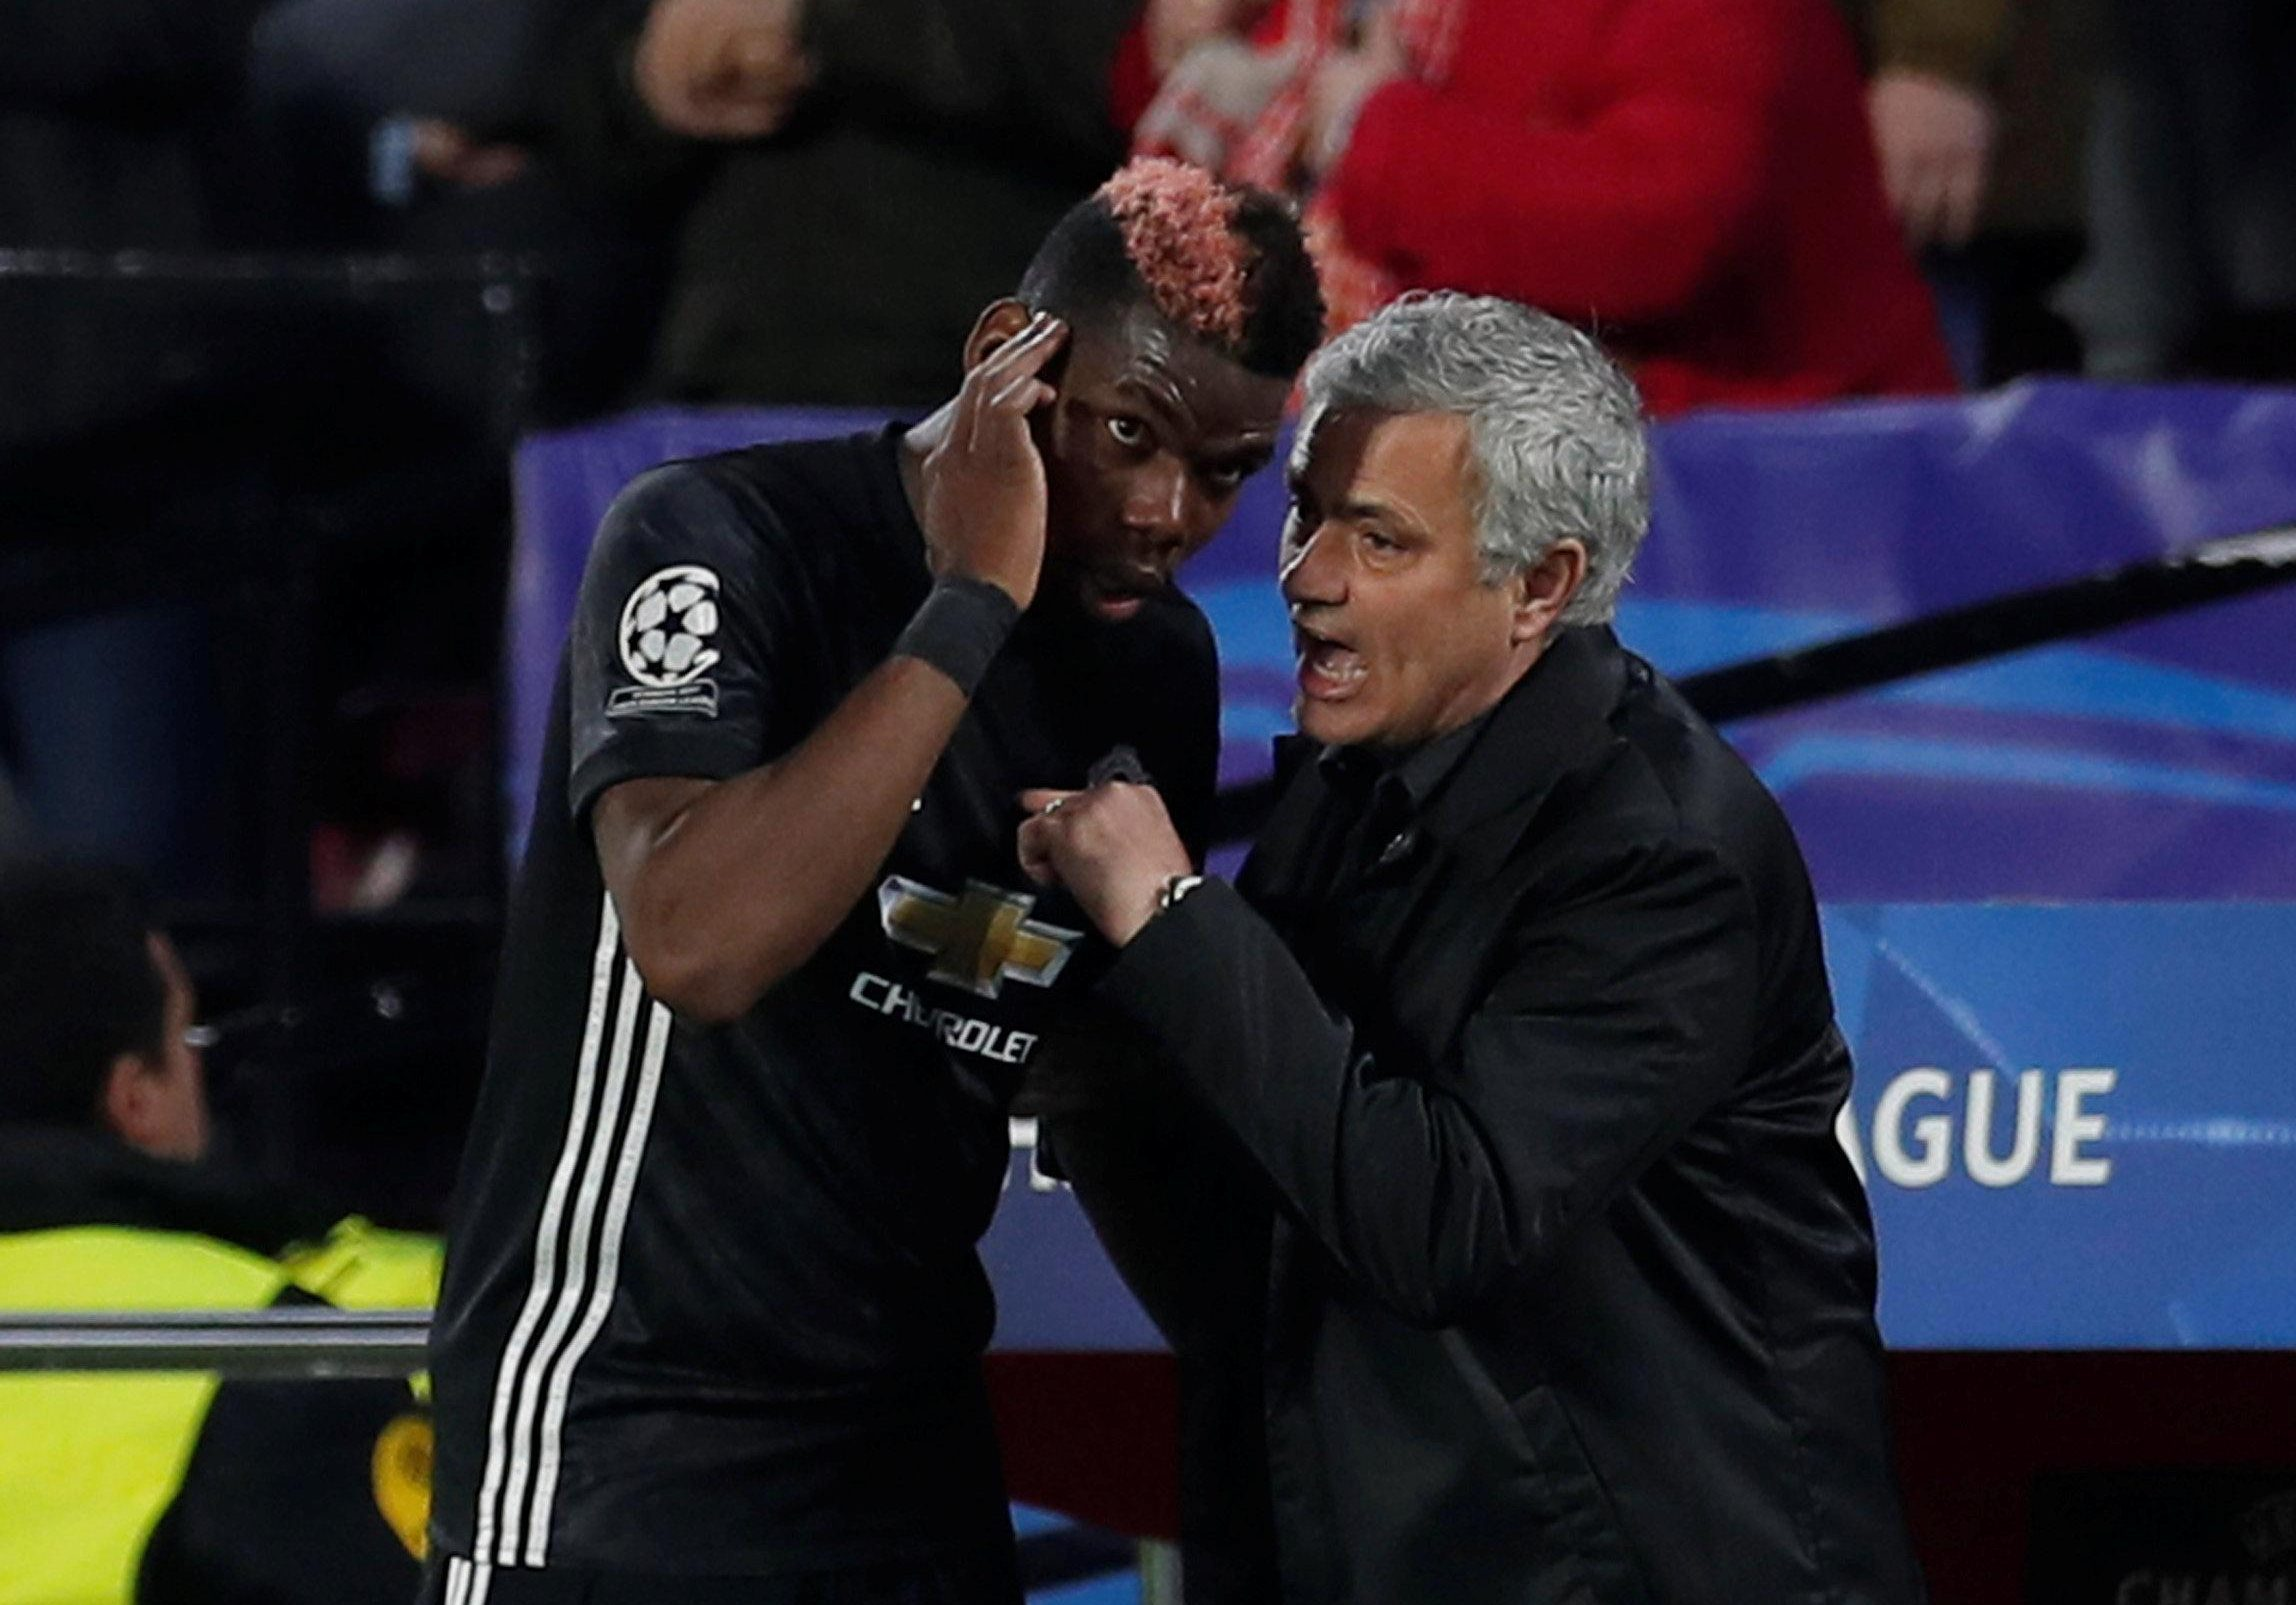 Jose Mourinho backed by Manchester United over Paul Pogba fall-out and 'stars warned they could be sold in any future flashpoints'